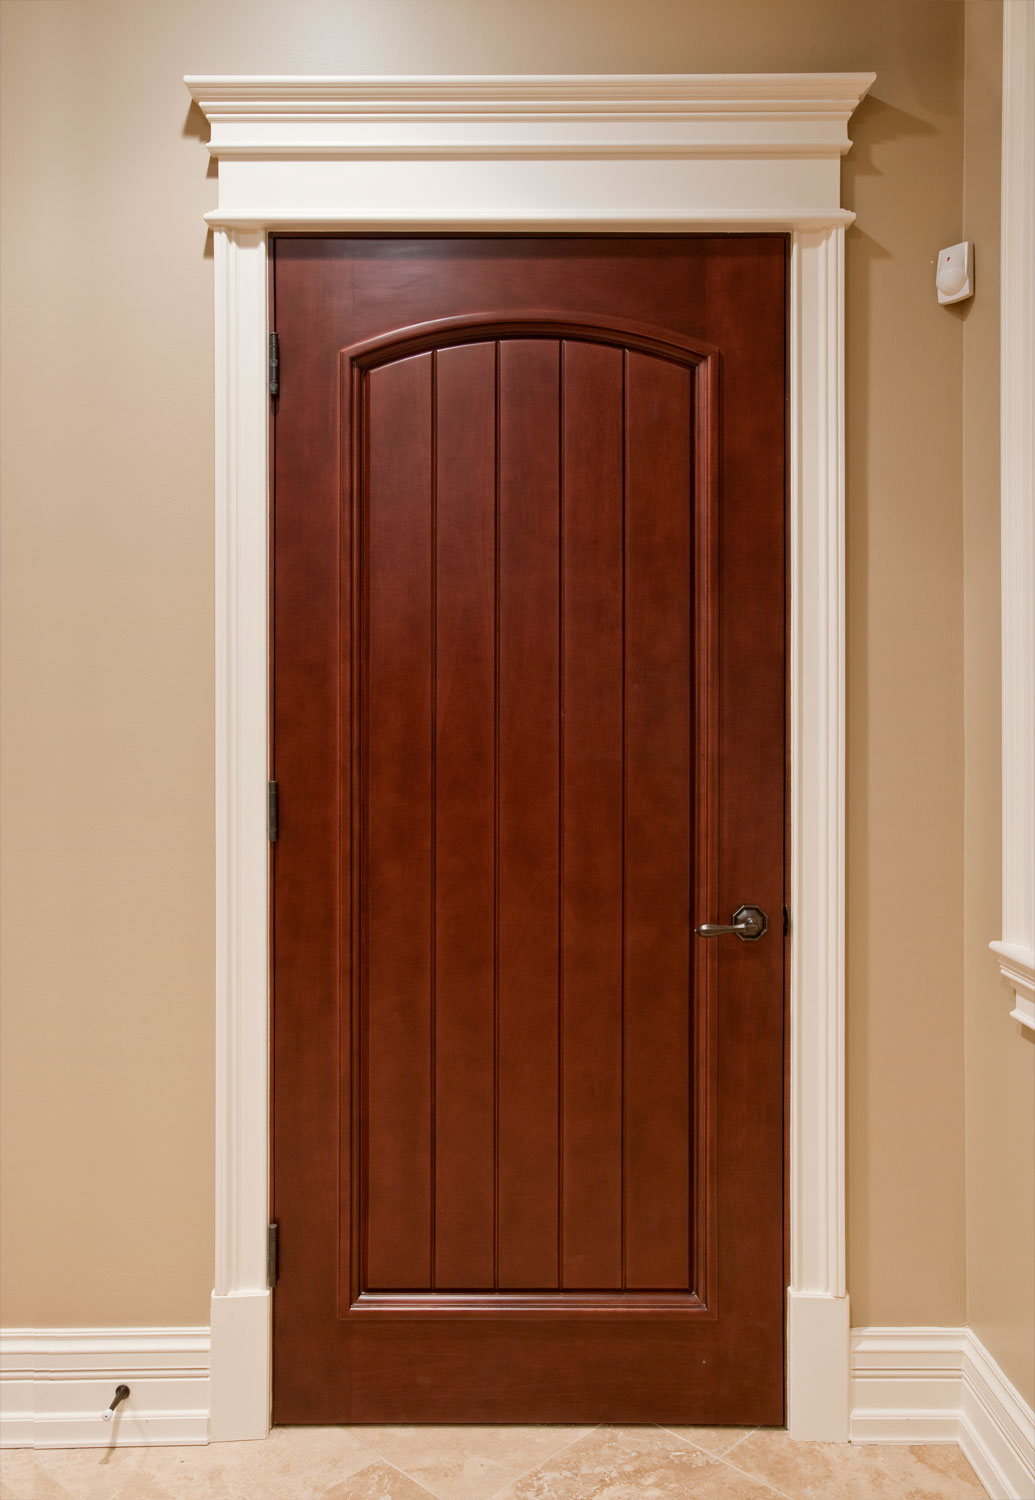 Popular interior doors mahogany solid wood interior door - single eptvmjk